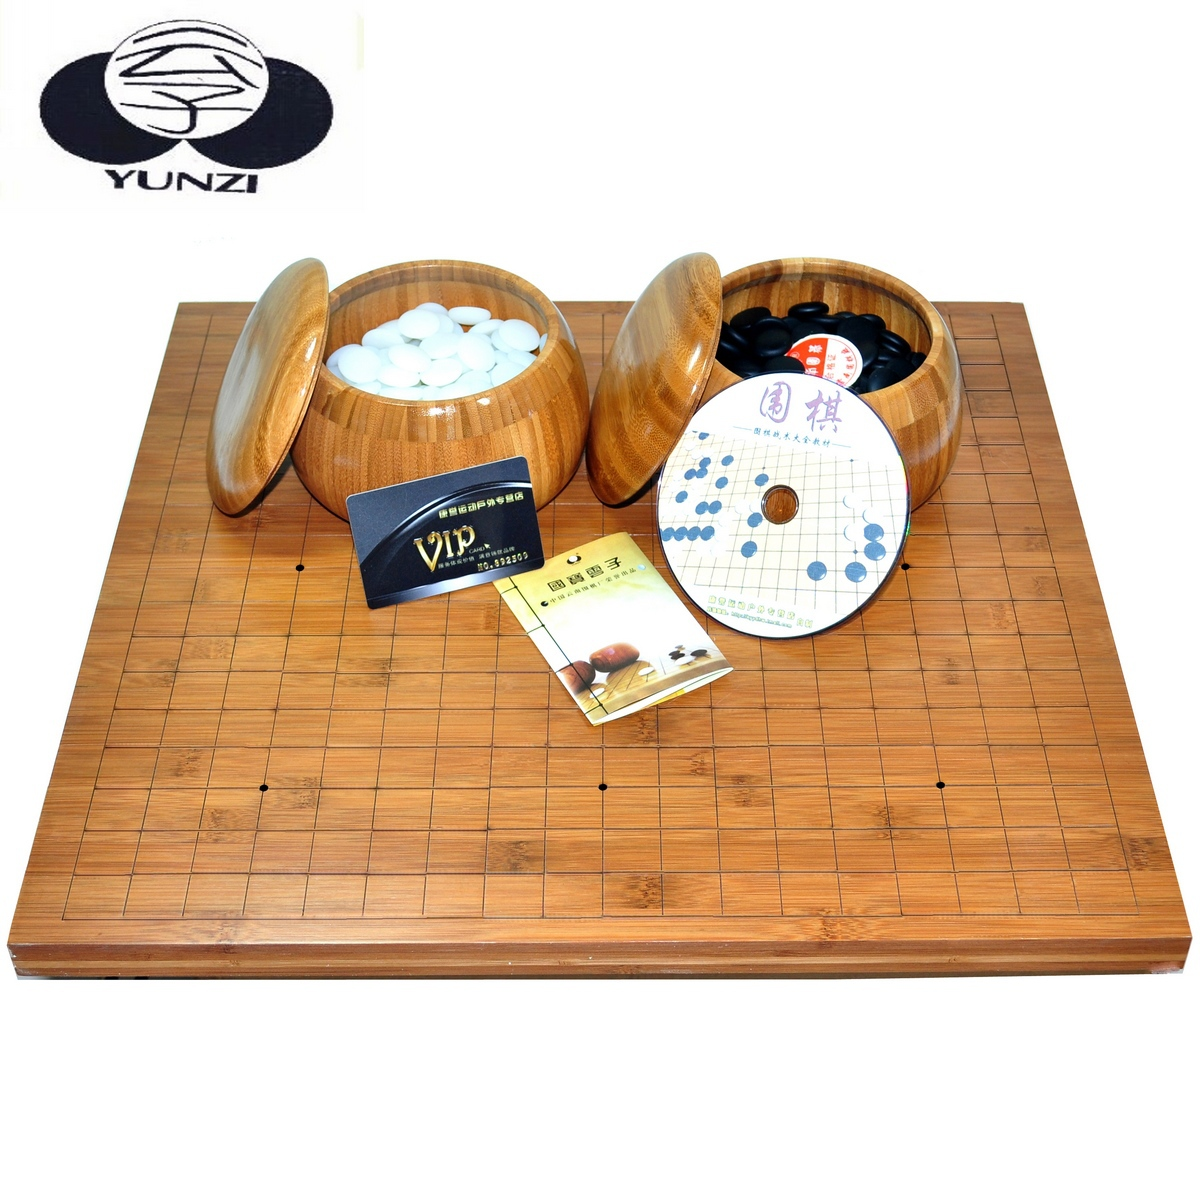  80 percent of four provinces special offer authentic chess set full bamboo laser line sent the Board materials